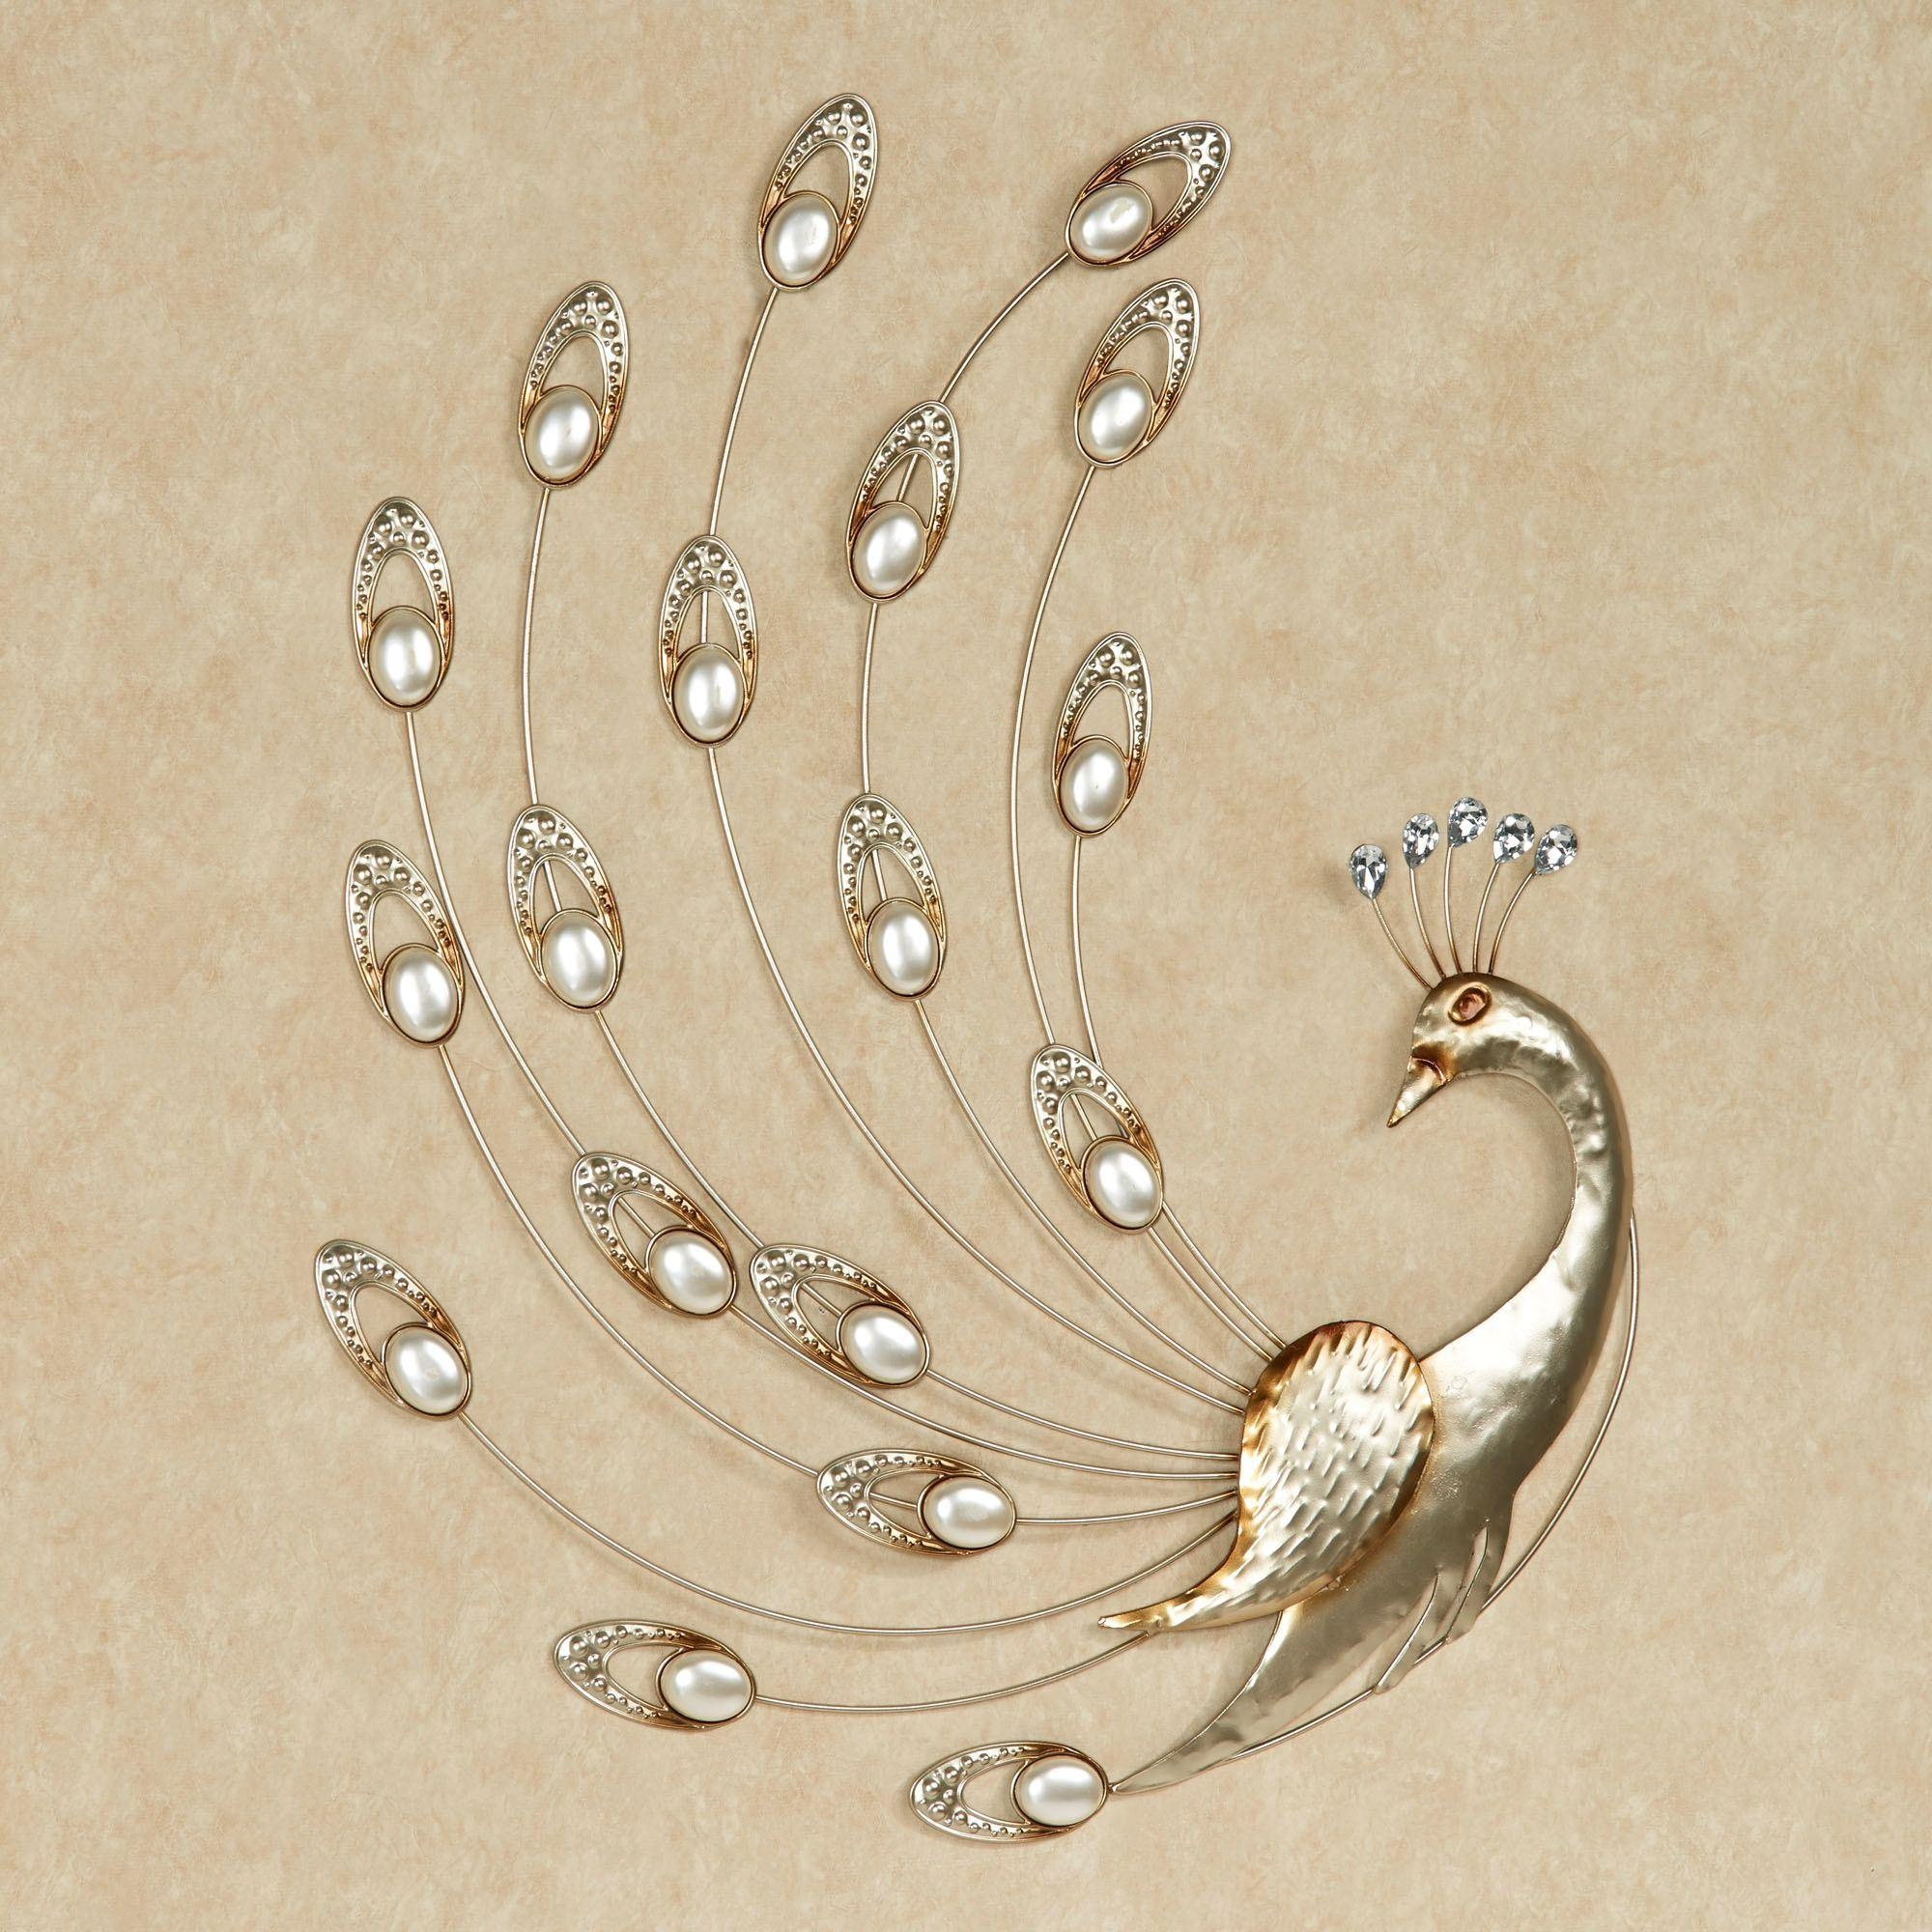 Wall Art, Metal Wall Art, Wooden Wall Art | Touch Of Class Throughout Jeweled Peacock Wall Art (Image 20 of 20)